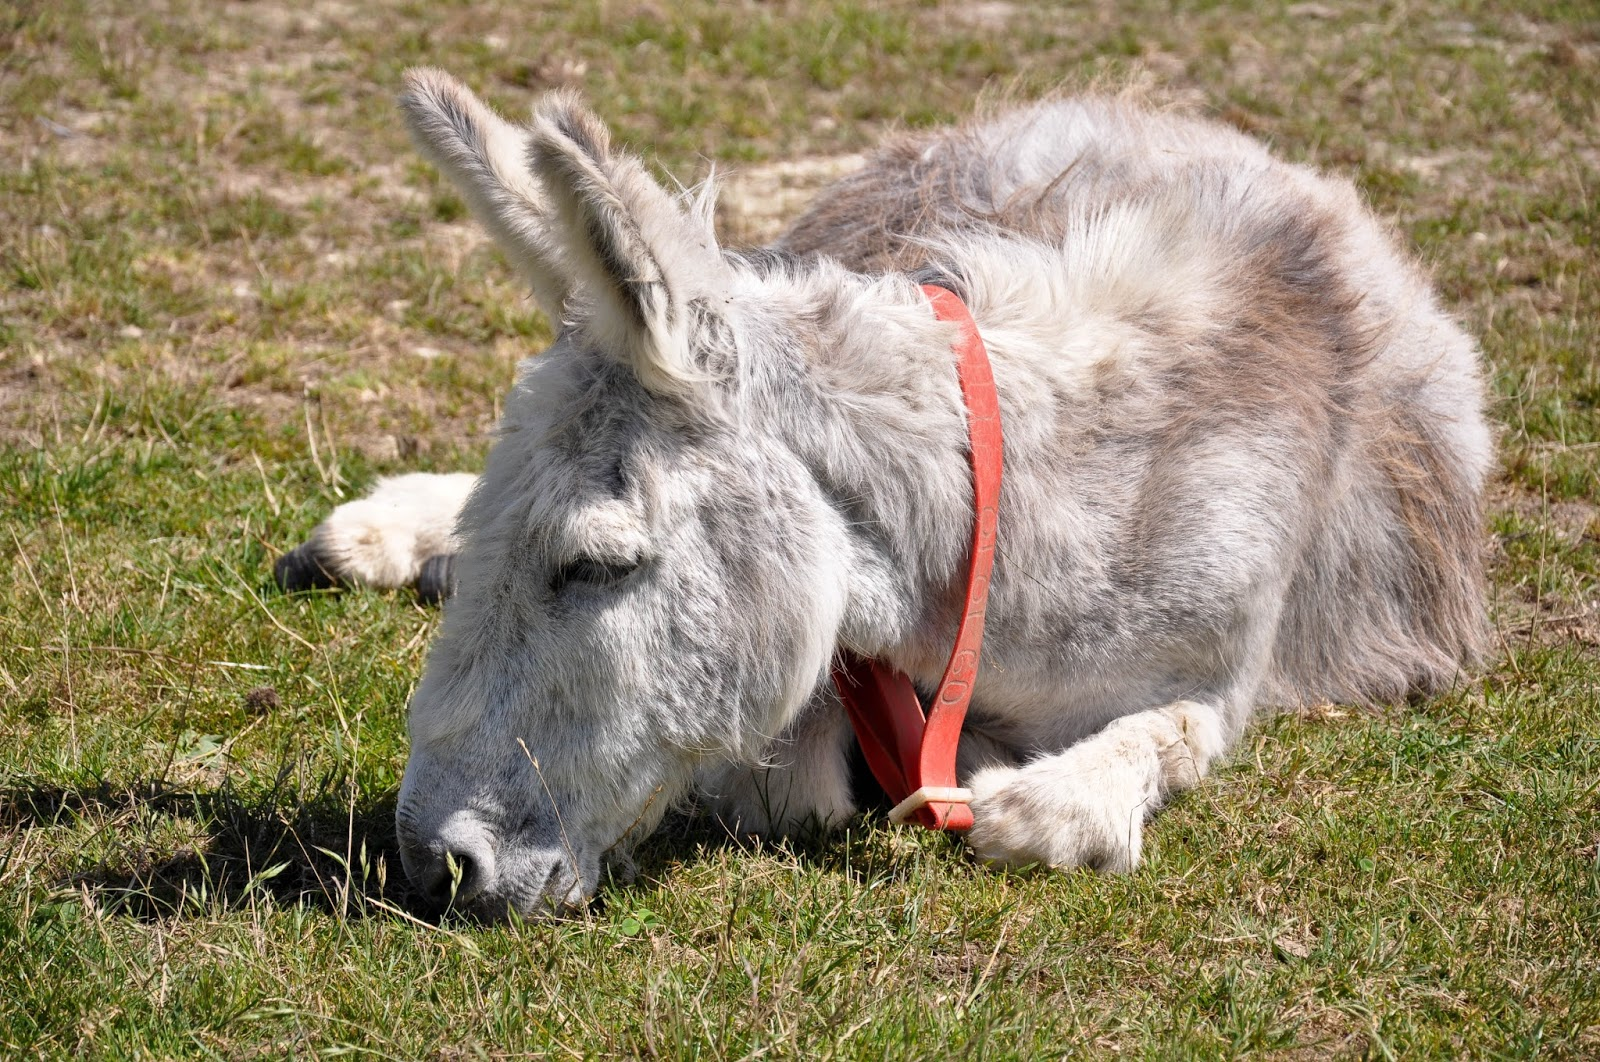 Relaxing donkey, The Donkey Sanctuary, Isle of Wight, UK